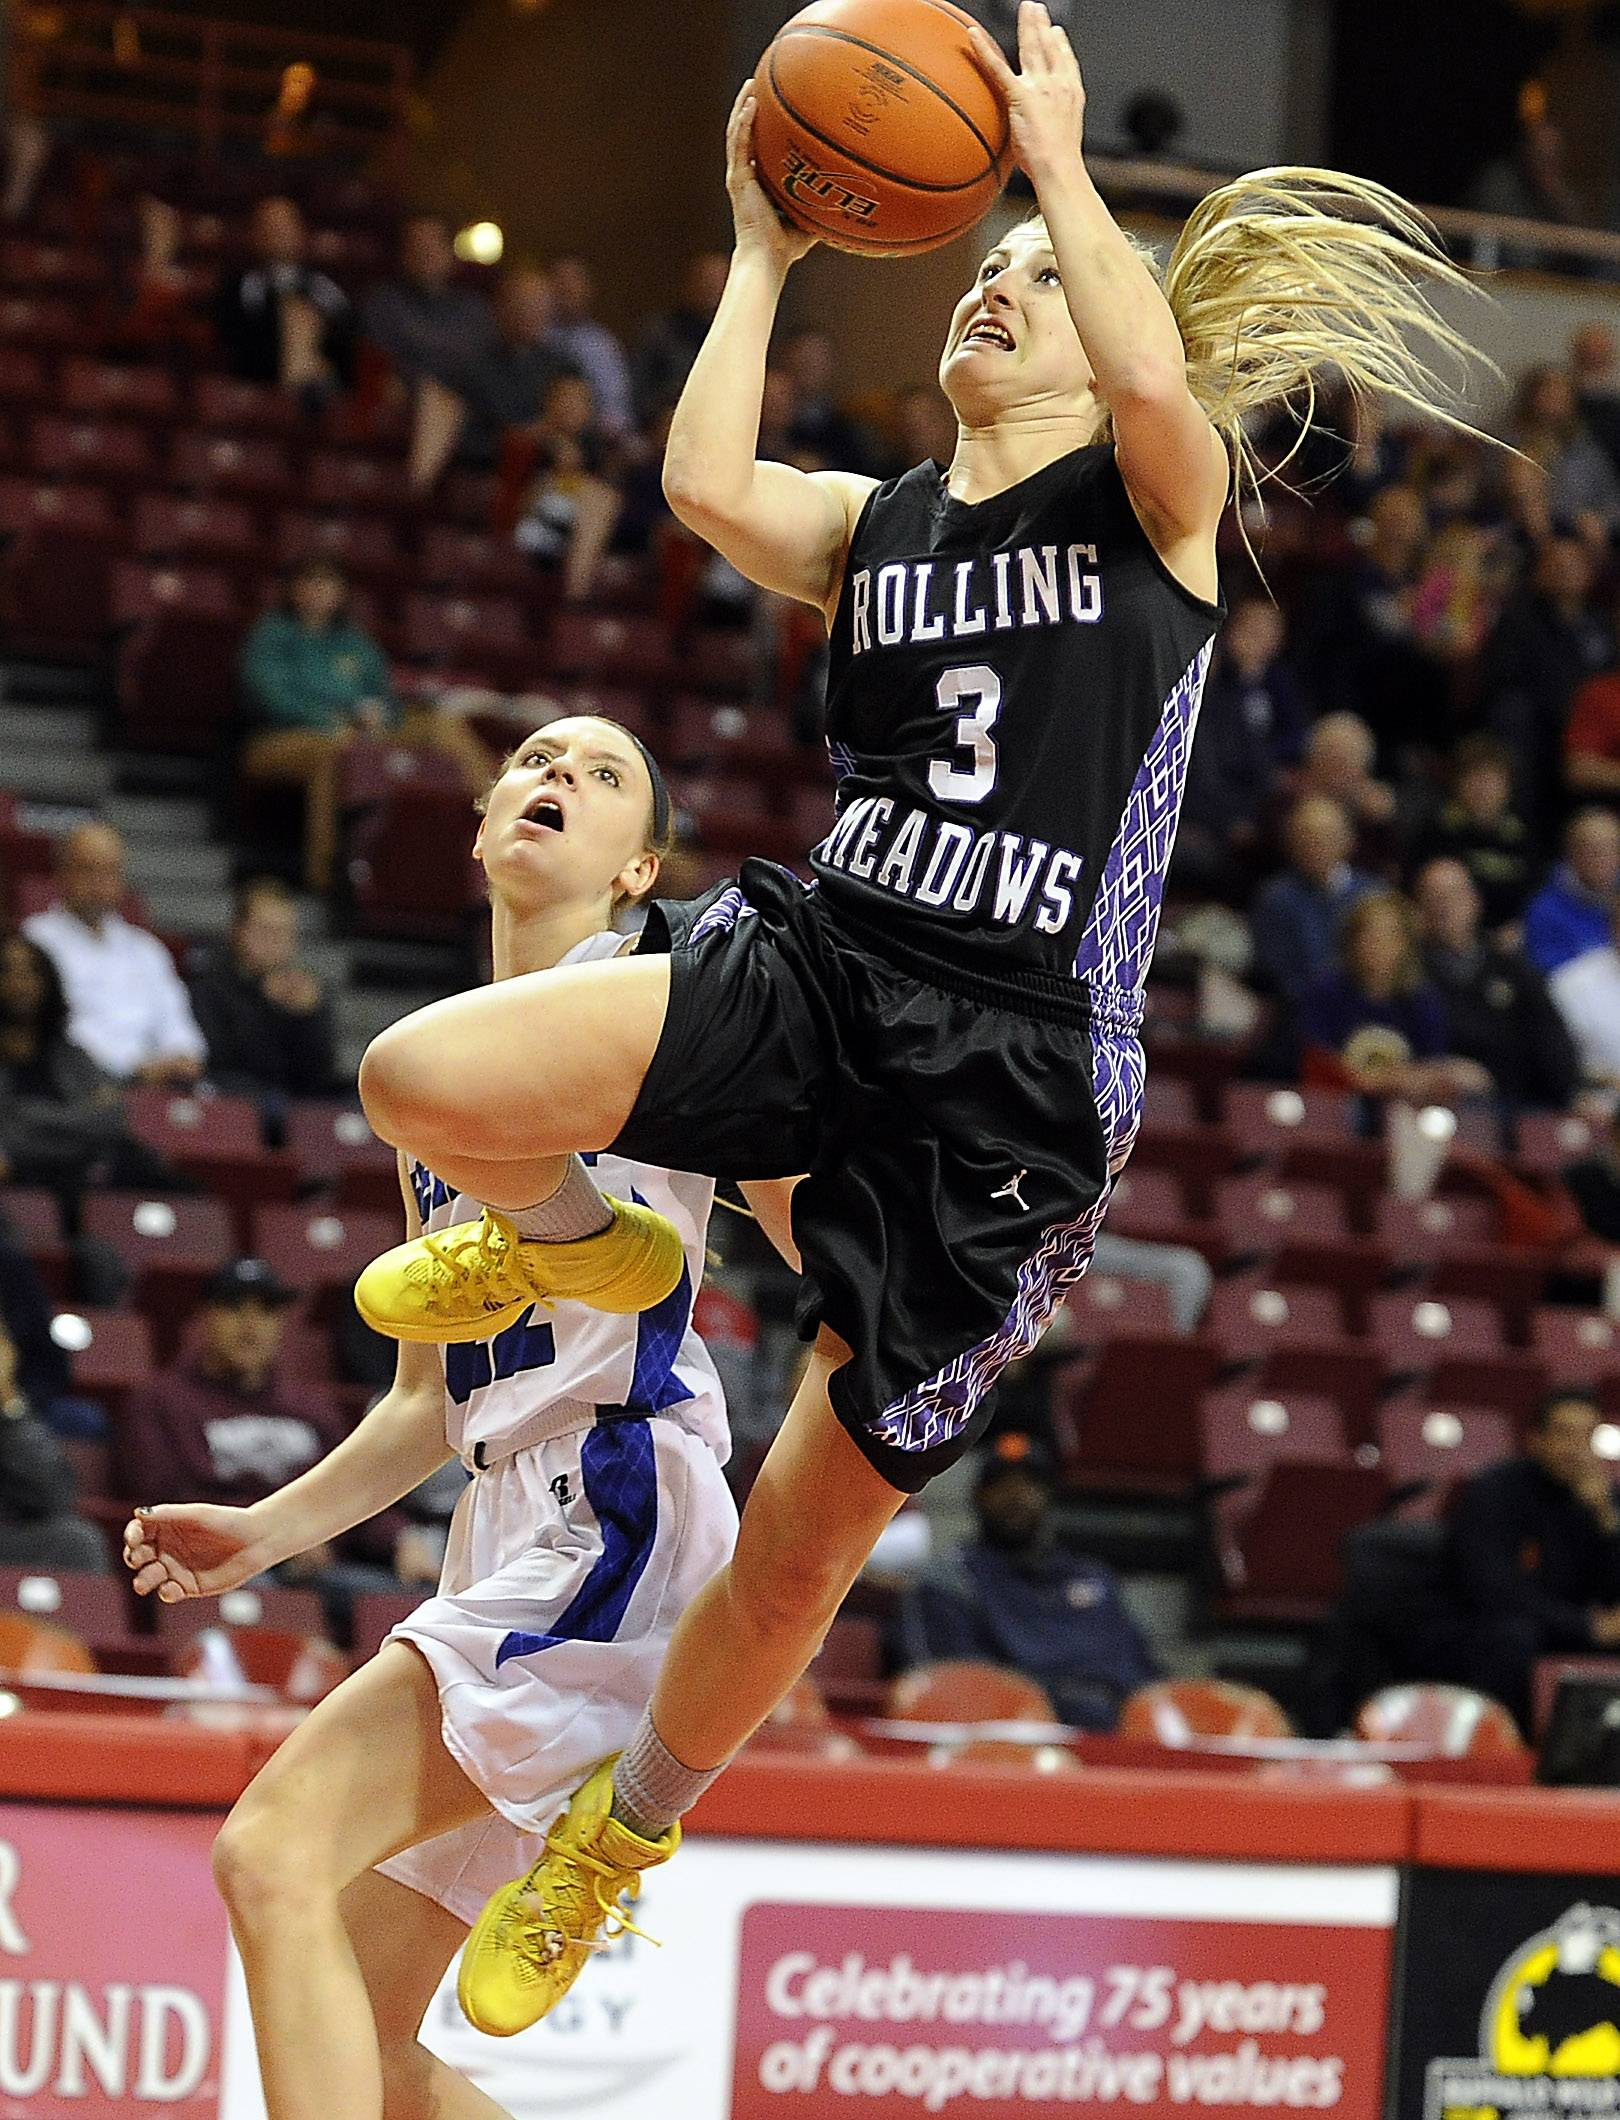 Rolling Meadows' Jackie Kemph gets to the basket after a steal from Geneva's Sidney Santos in the first half of the Class 4A state semifinals in Normal on Friday.